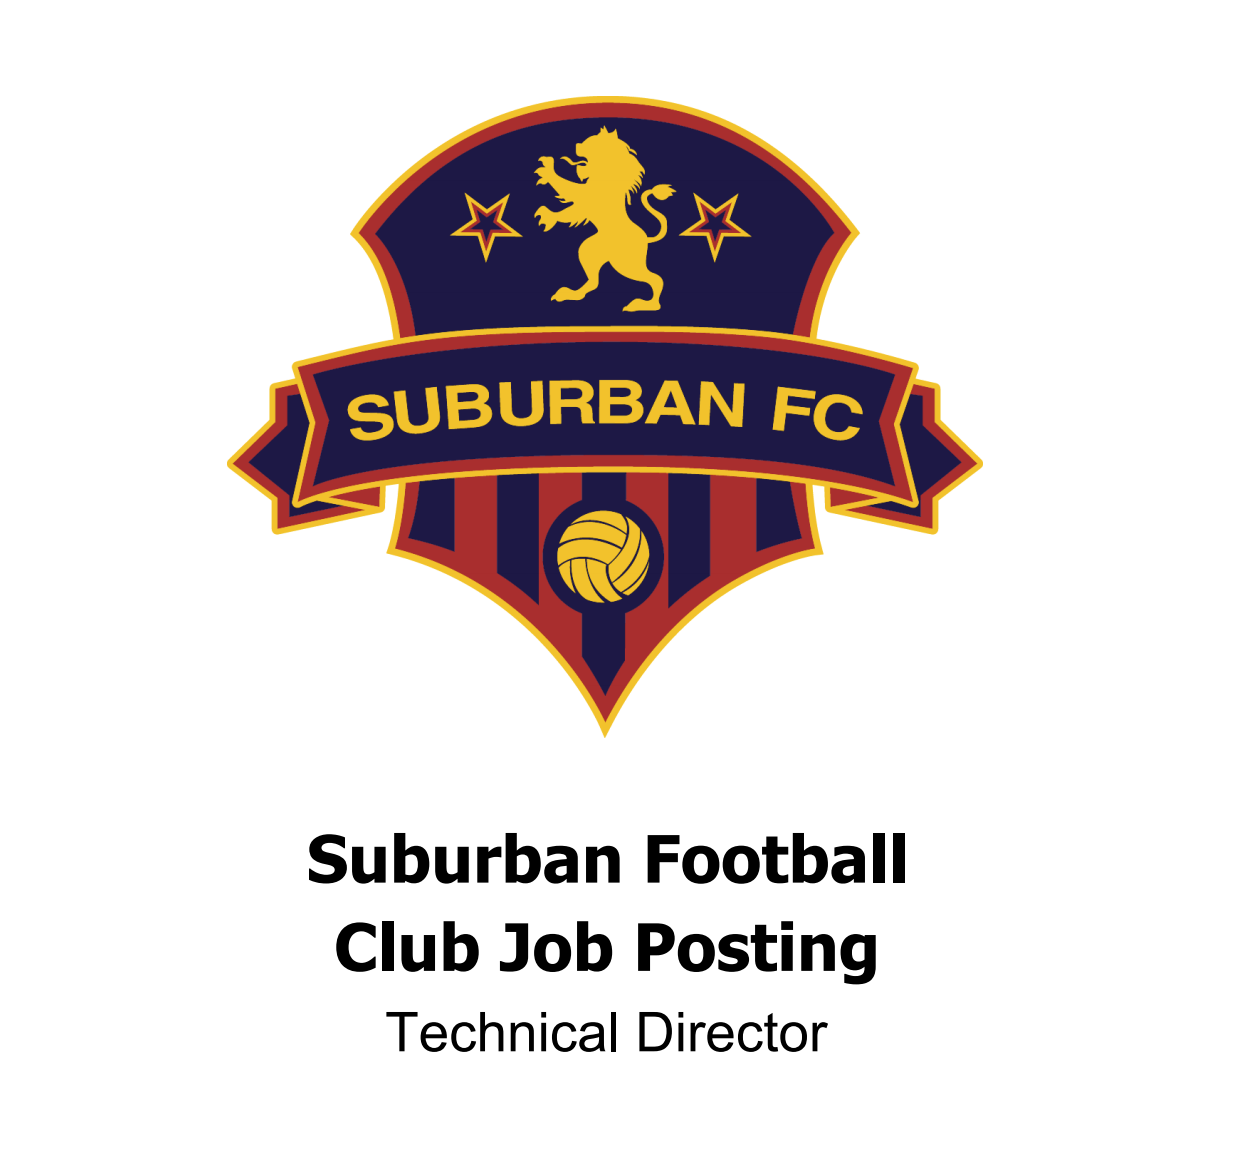 Technical Director Job Posting